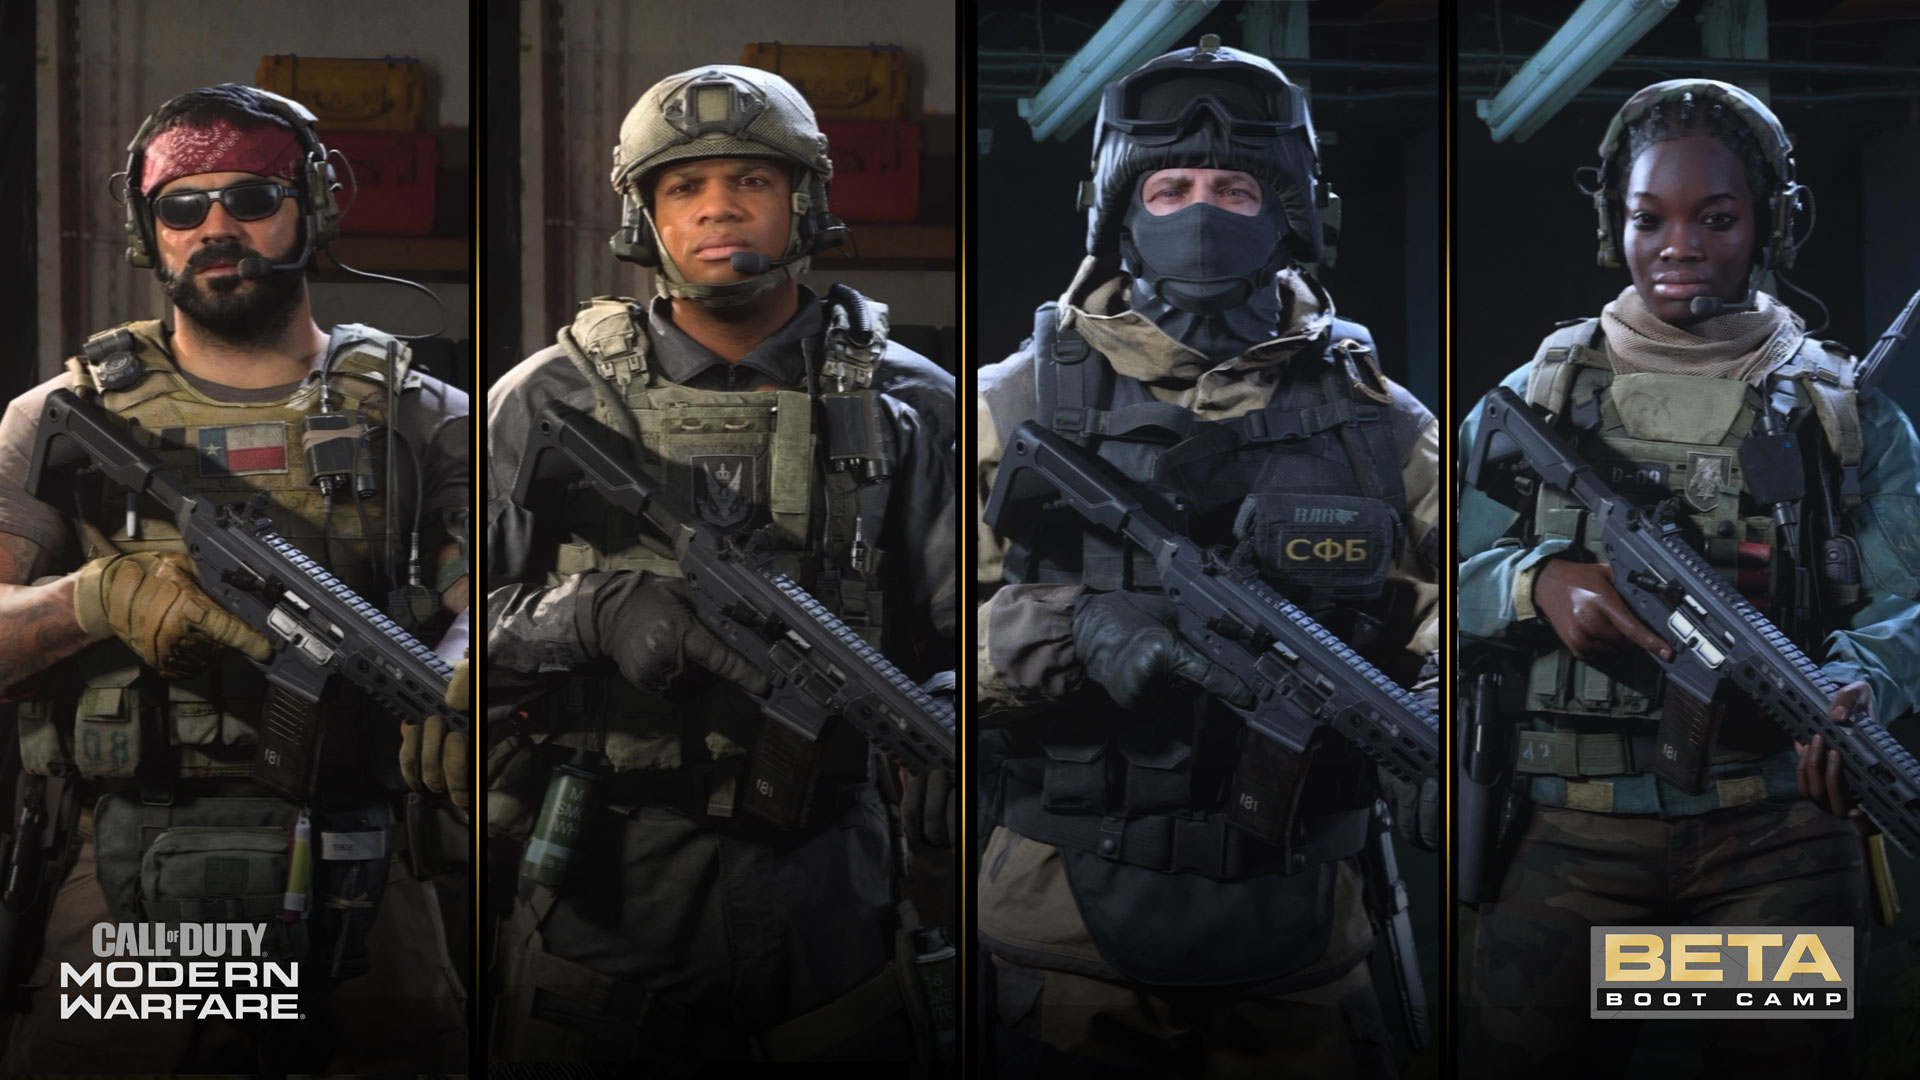 Modern Warfare Beta Boot Camp A Look At The Operators On Deck